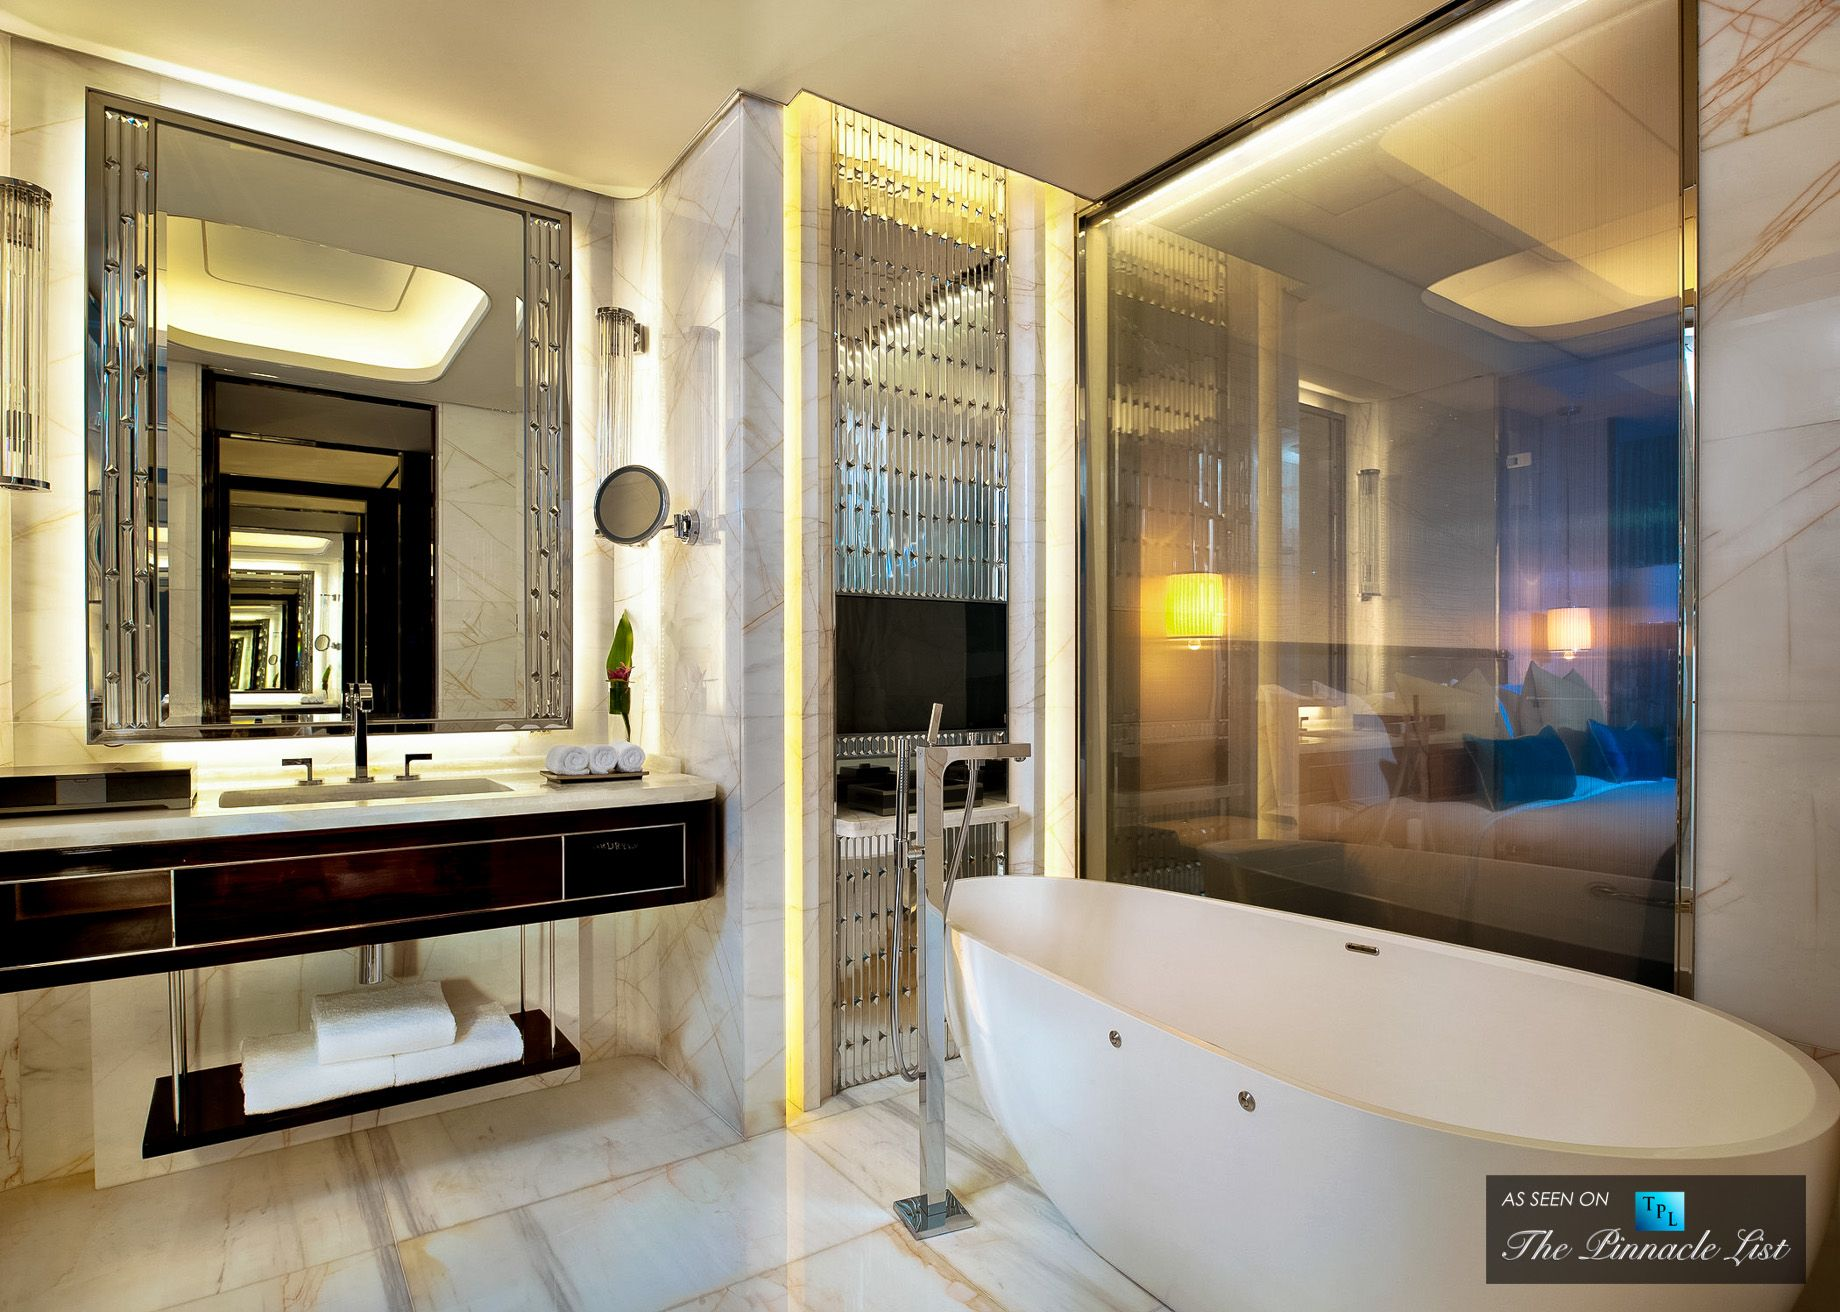 ... bath luxury hotels site:pinterest.com - Luxurious bathrooms, Hotel  bathrooms and he ...